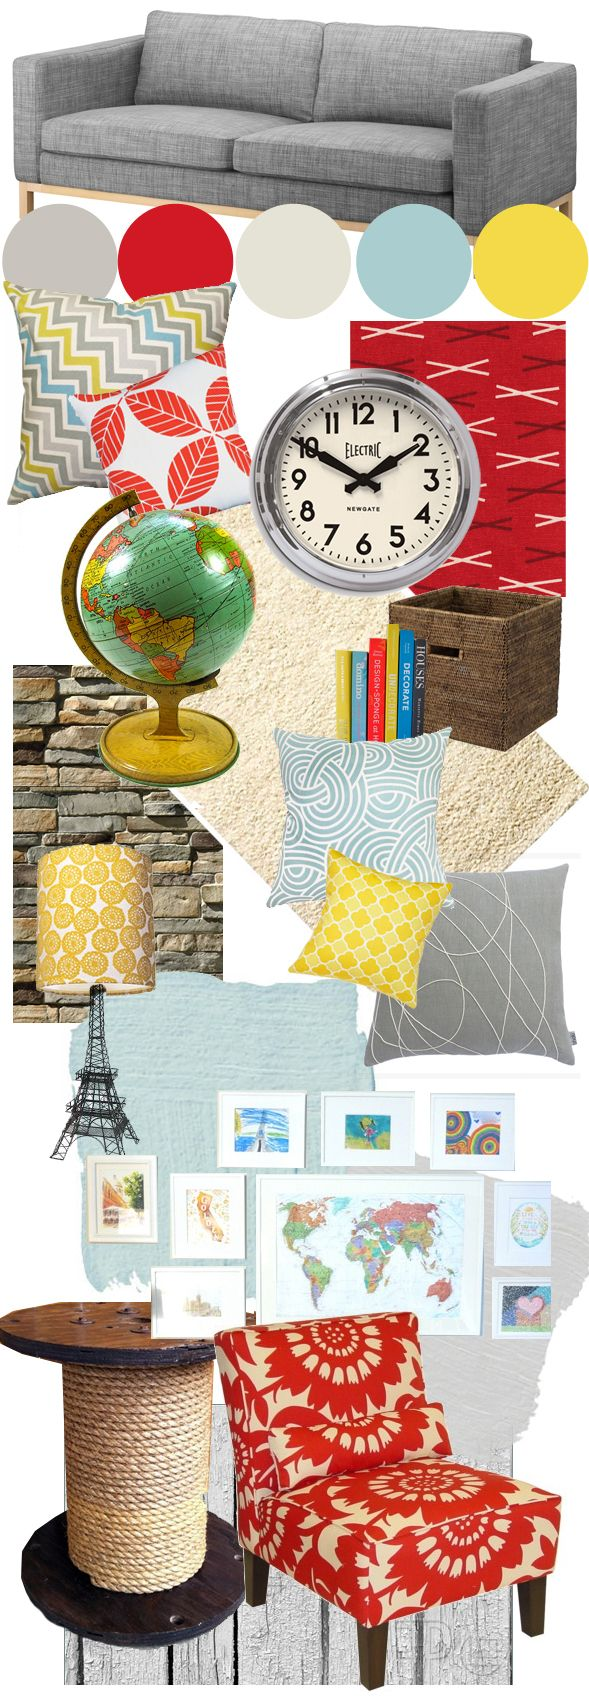 Grey, aqua, yellow, red living room moodboard